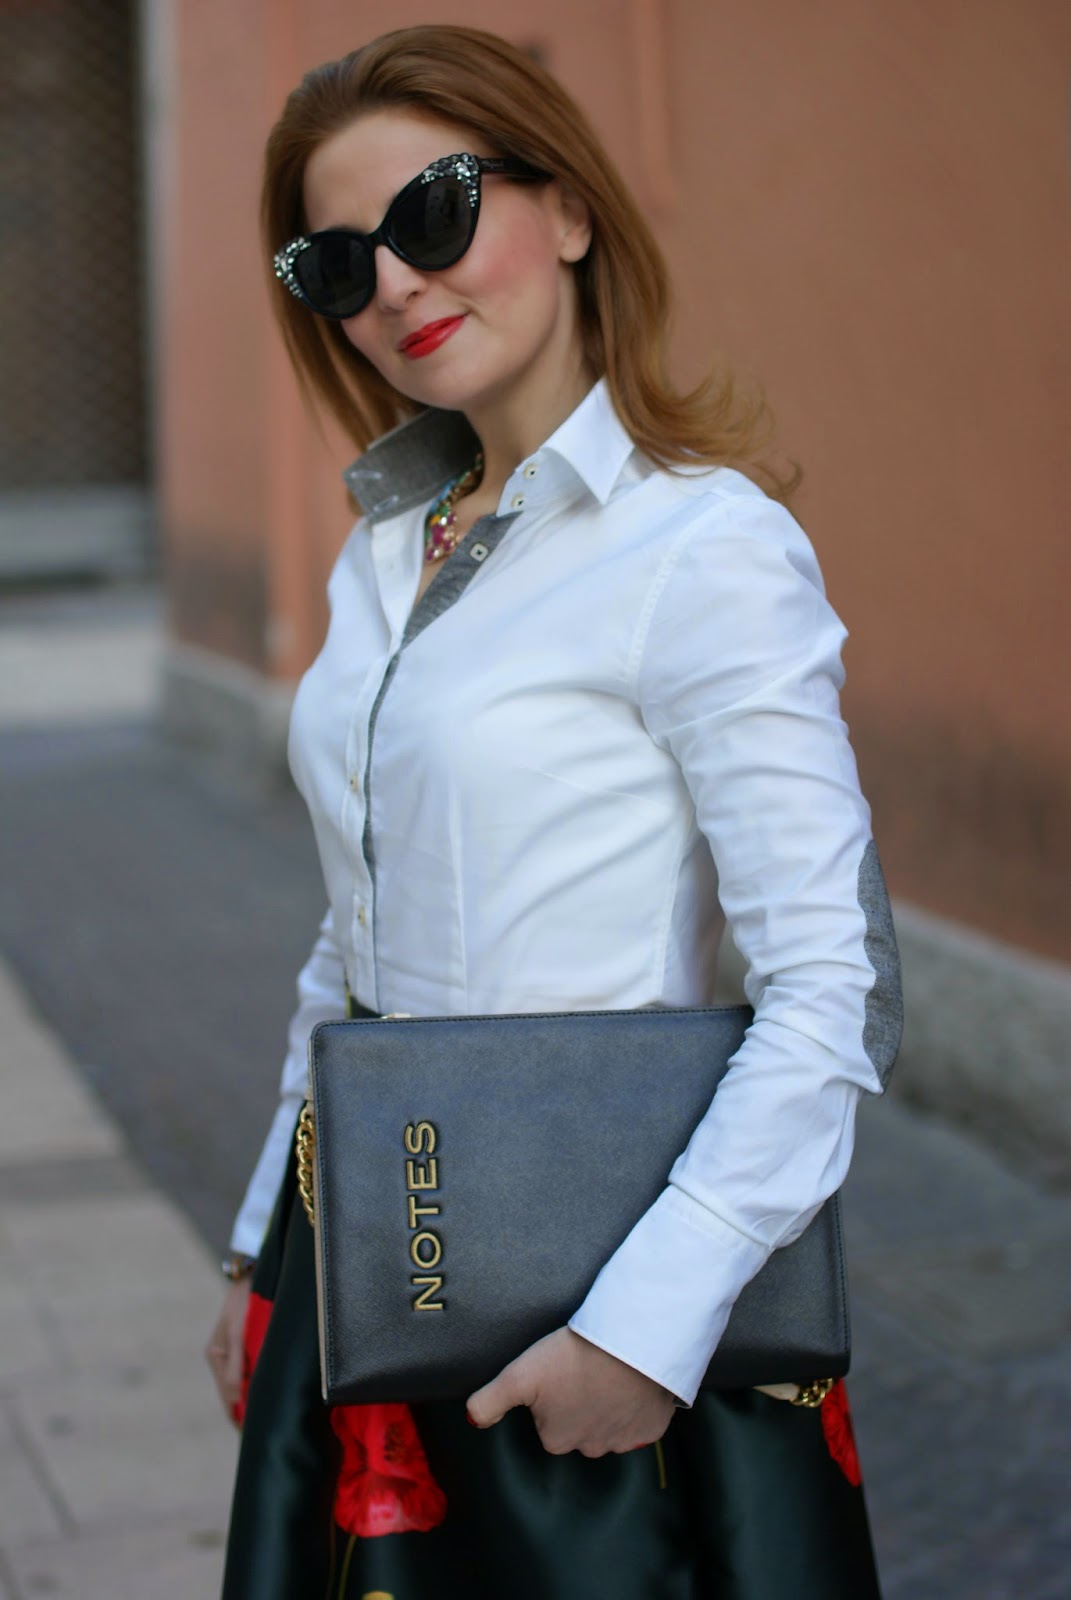 Moschino Notes clutch, jeweled sunglasses, poppy print skirt, Fashion and Cookies, fashion blogger